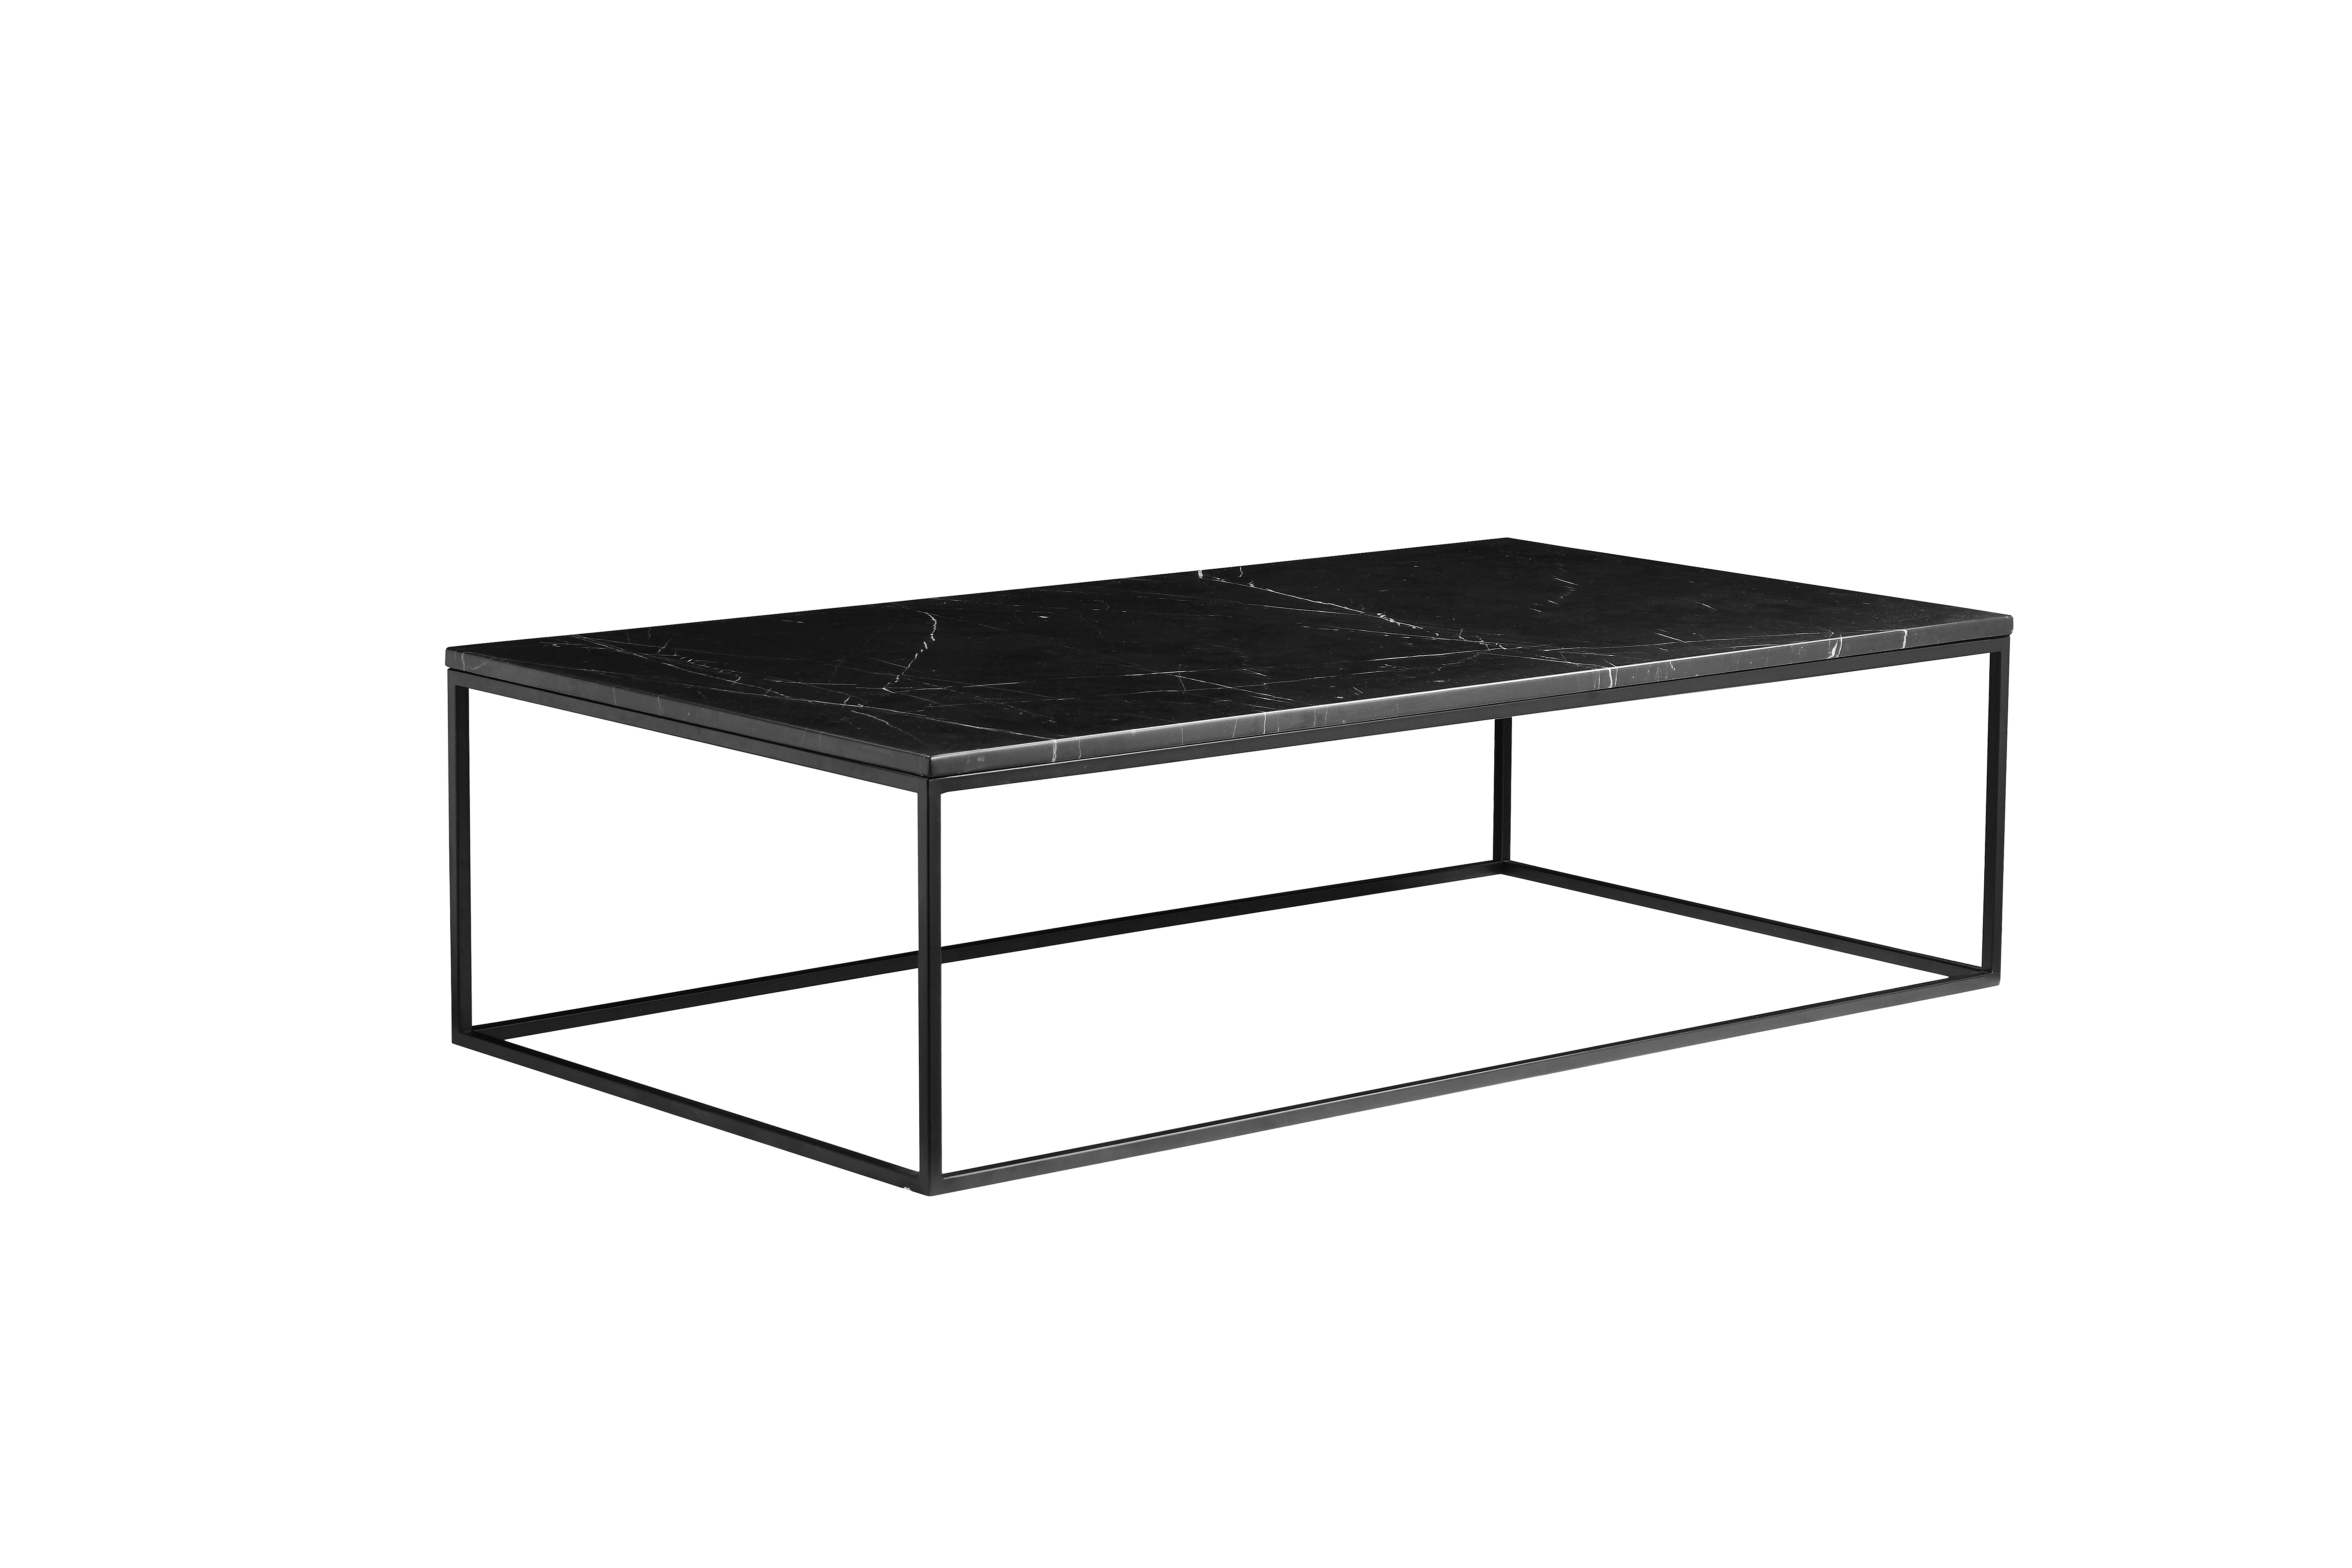 17042b106d Onix Rectangular Coffee Table Black Nero Marquina Marble with Black ...